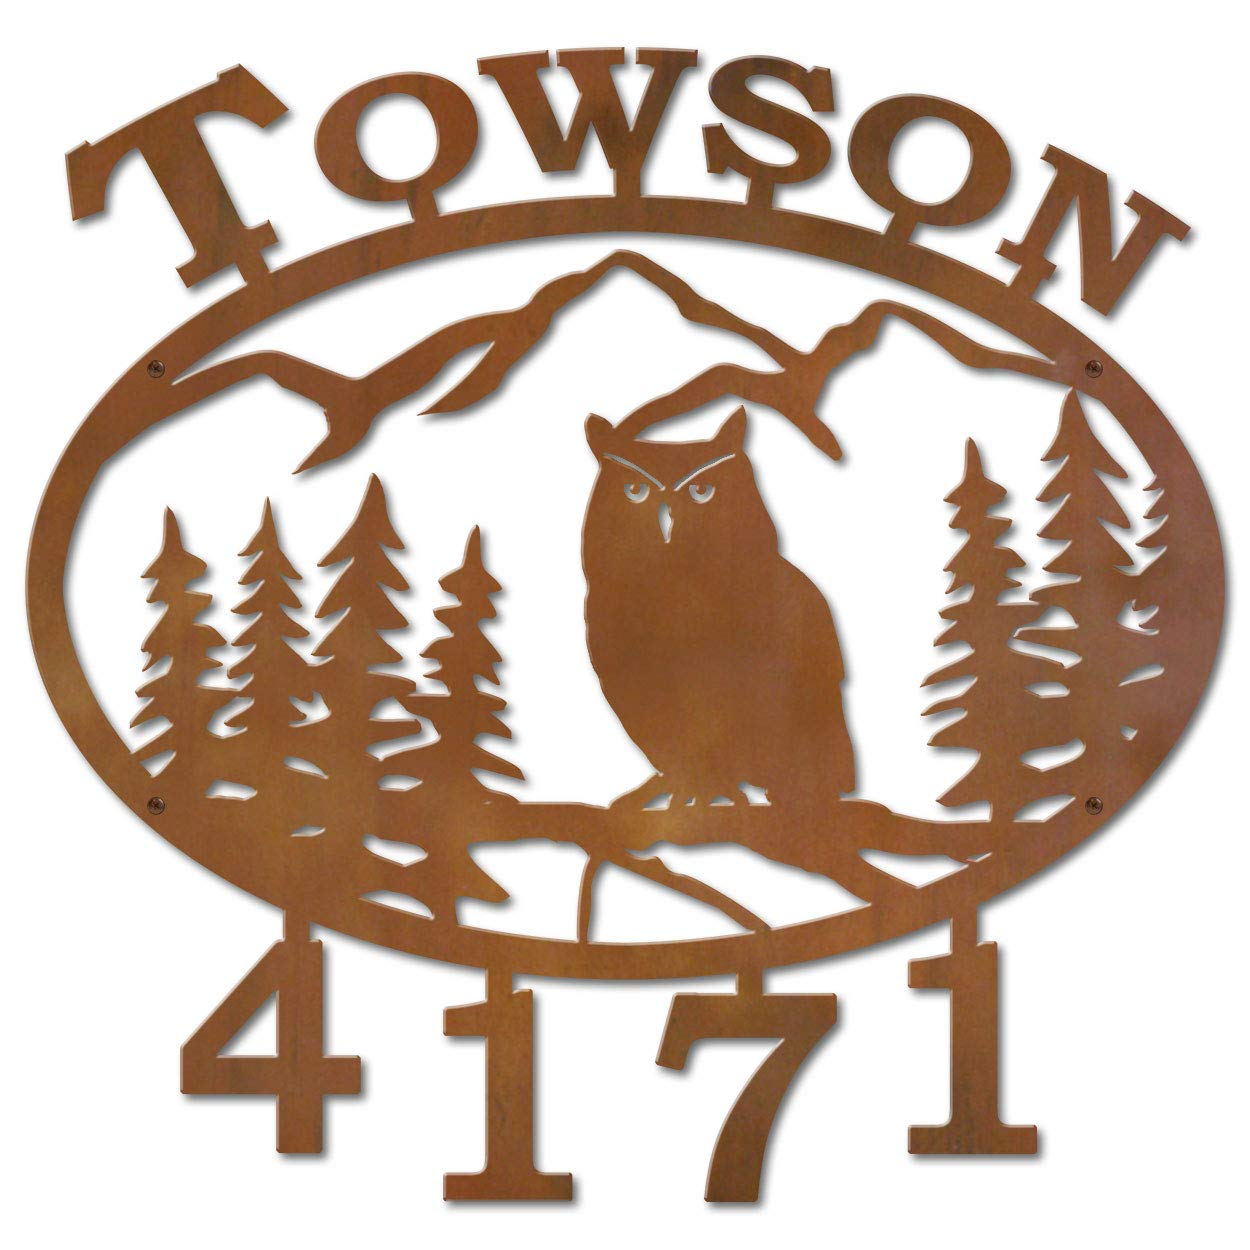 Cold Nose Creations 22in Oval Steel Address Name and Numbers Sign - Lodge Theme Mountain Owl Scene - Rust Metal Finish - Made in USA